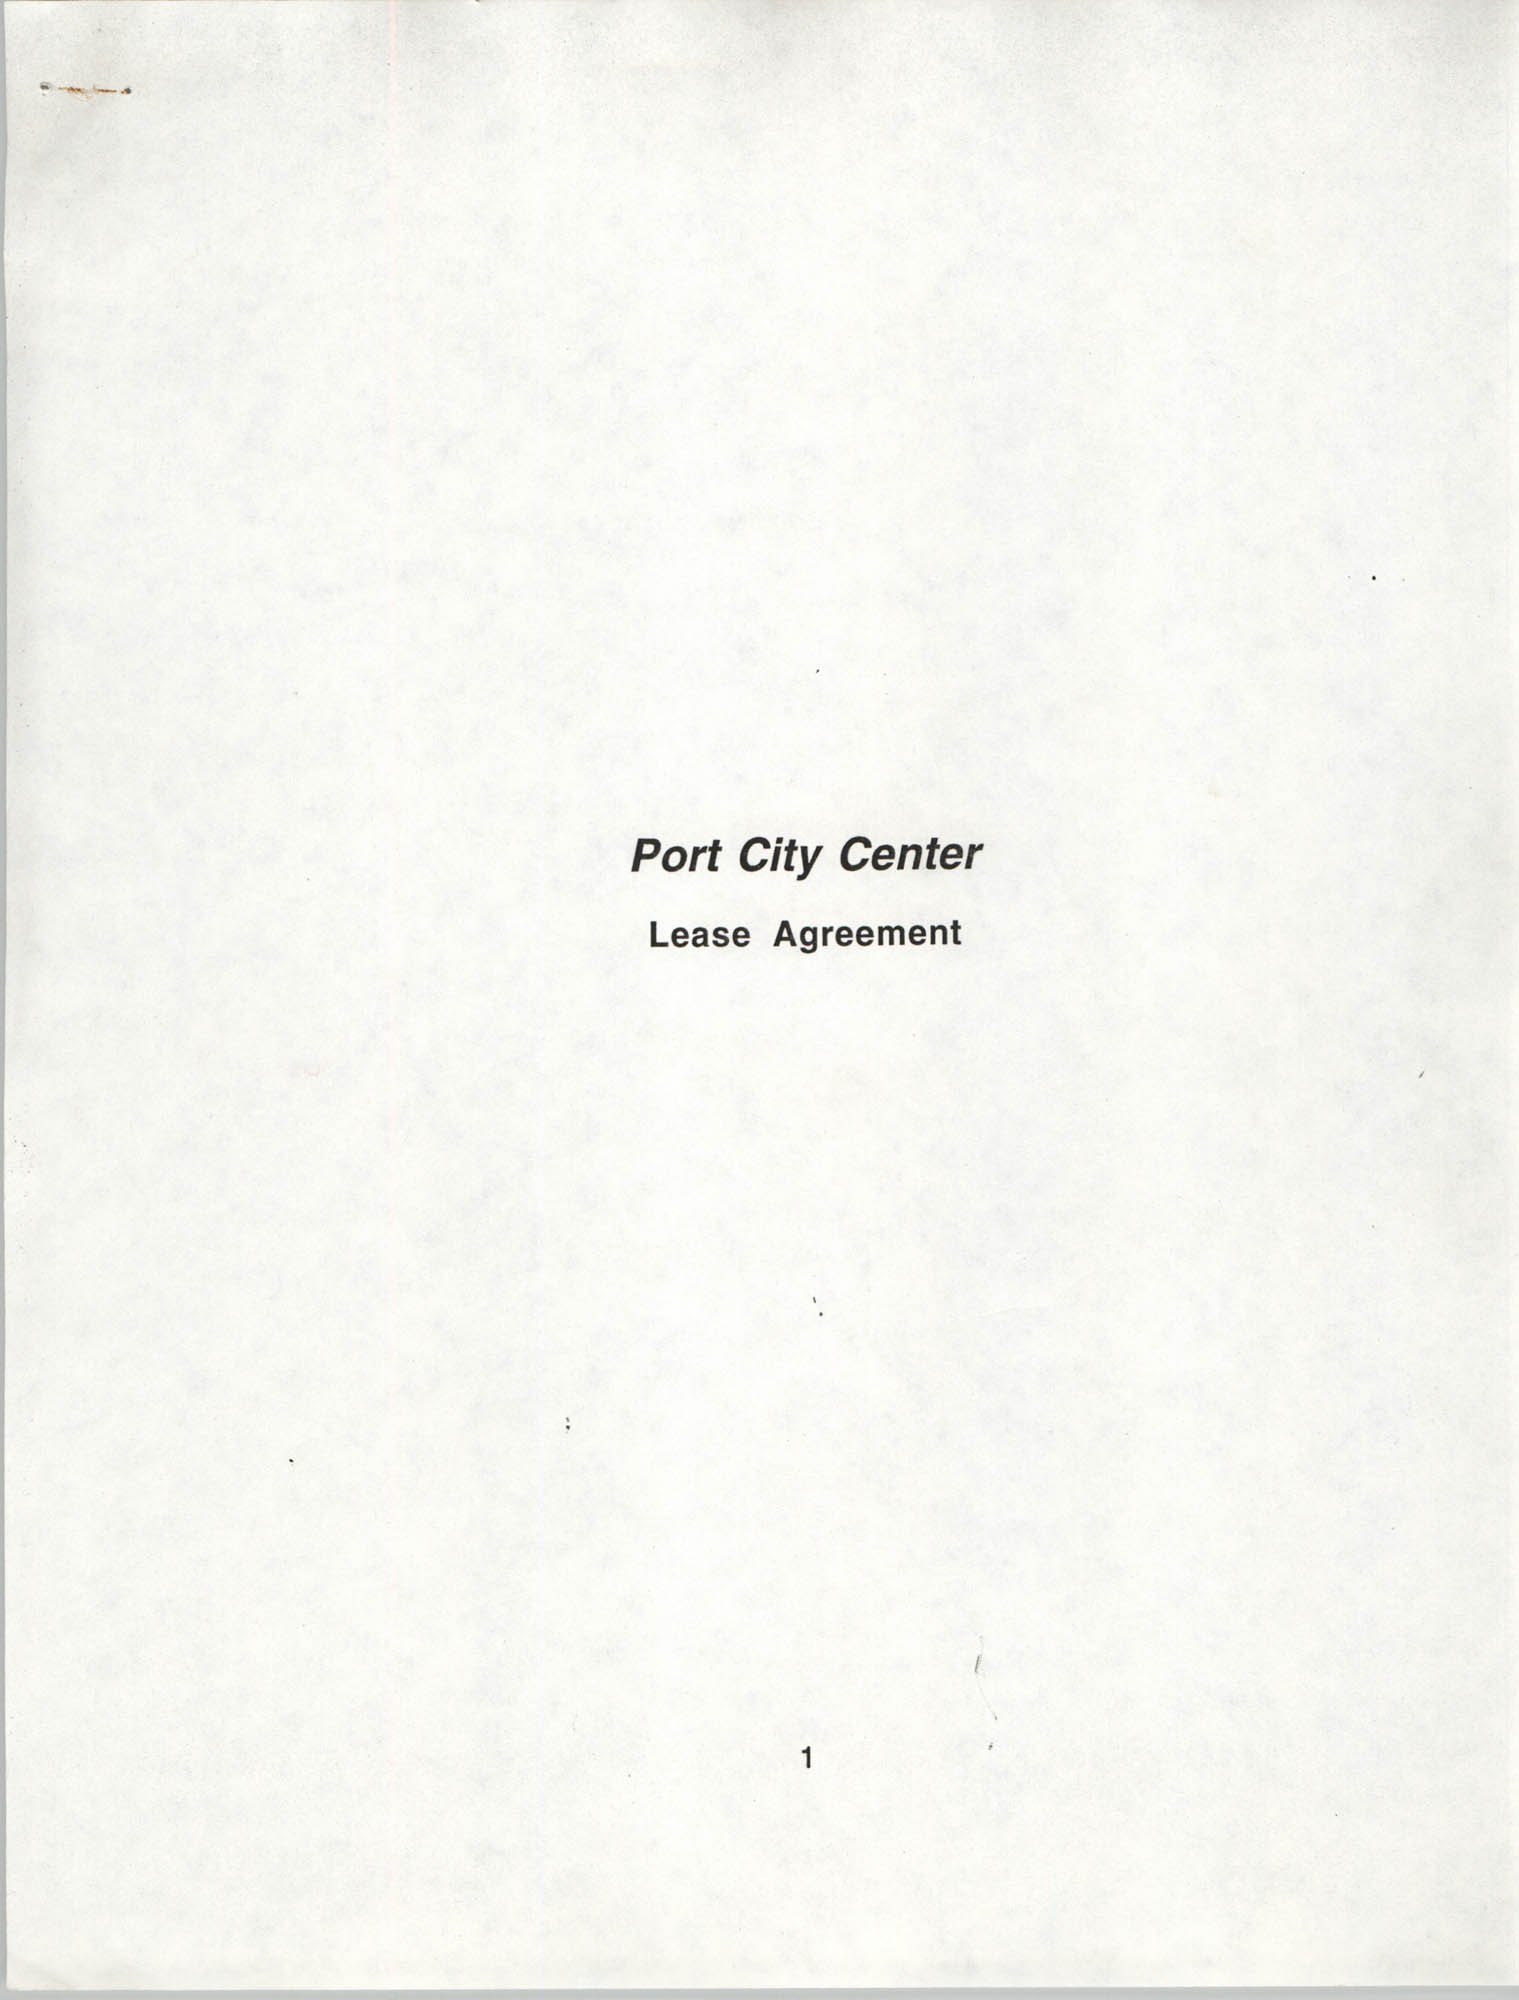 Charleston Branch of the NAACP Leasing Agreement, July 1994 to June 1995, Cover